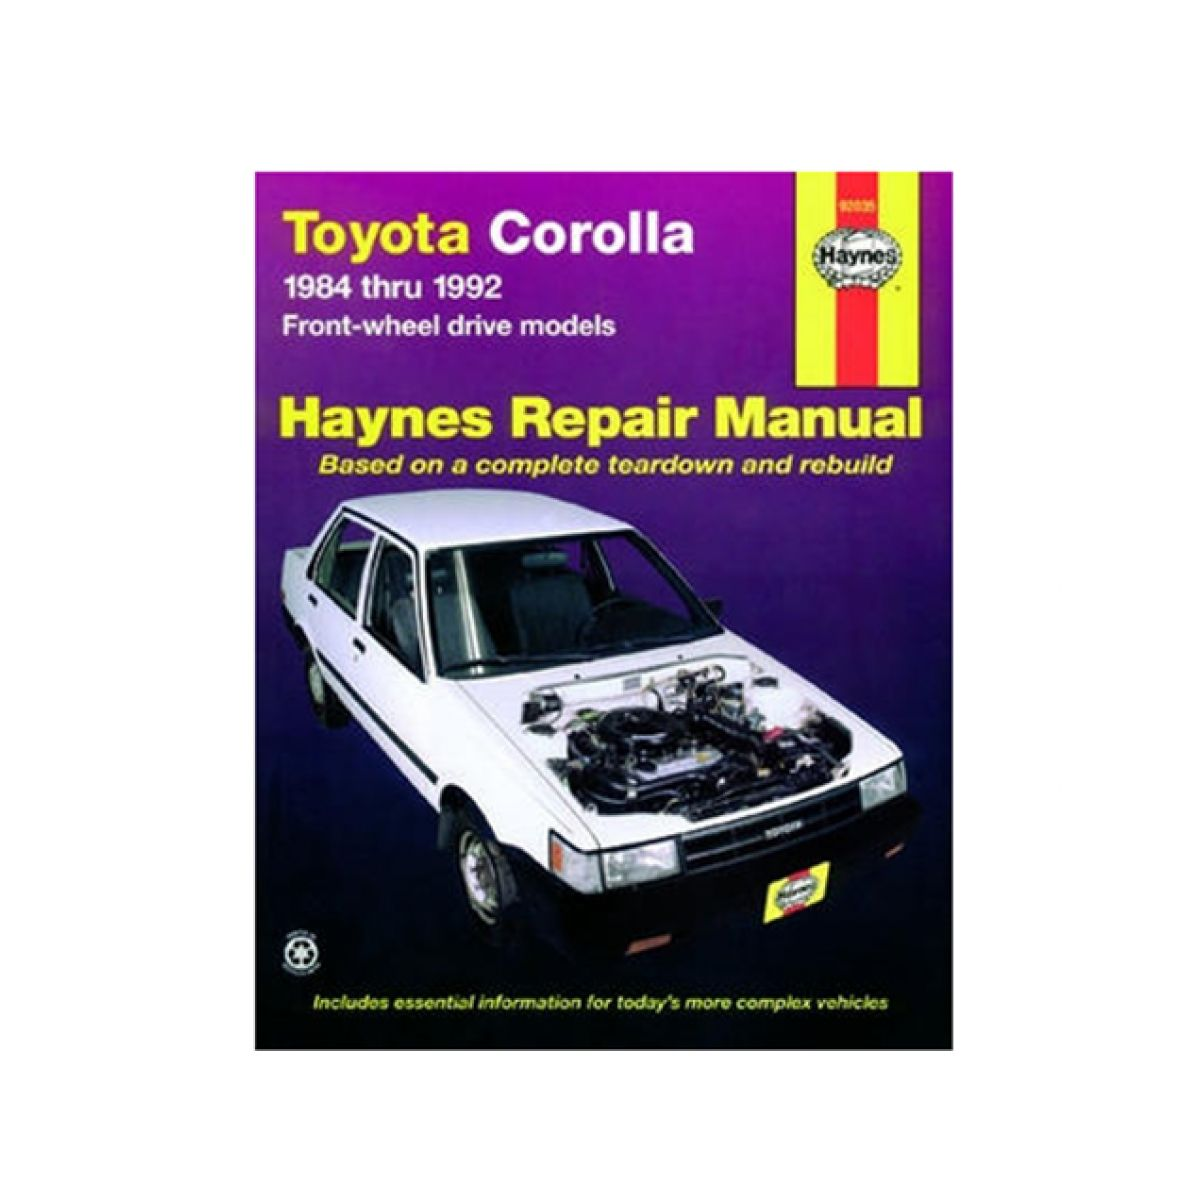 Haynes Repair Manual for Toyota Corolla 84-88 89 90 91 92